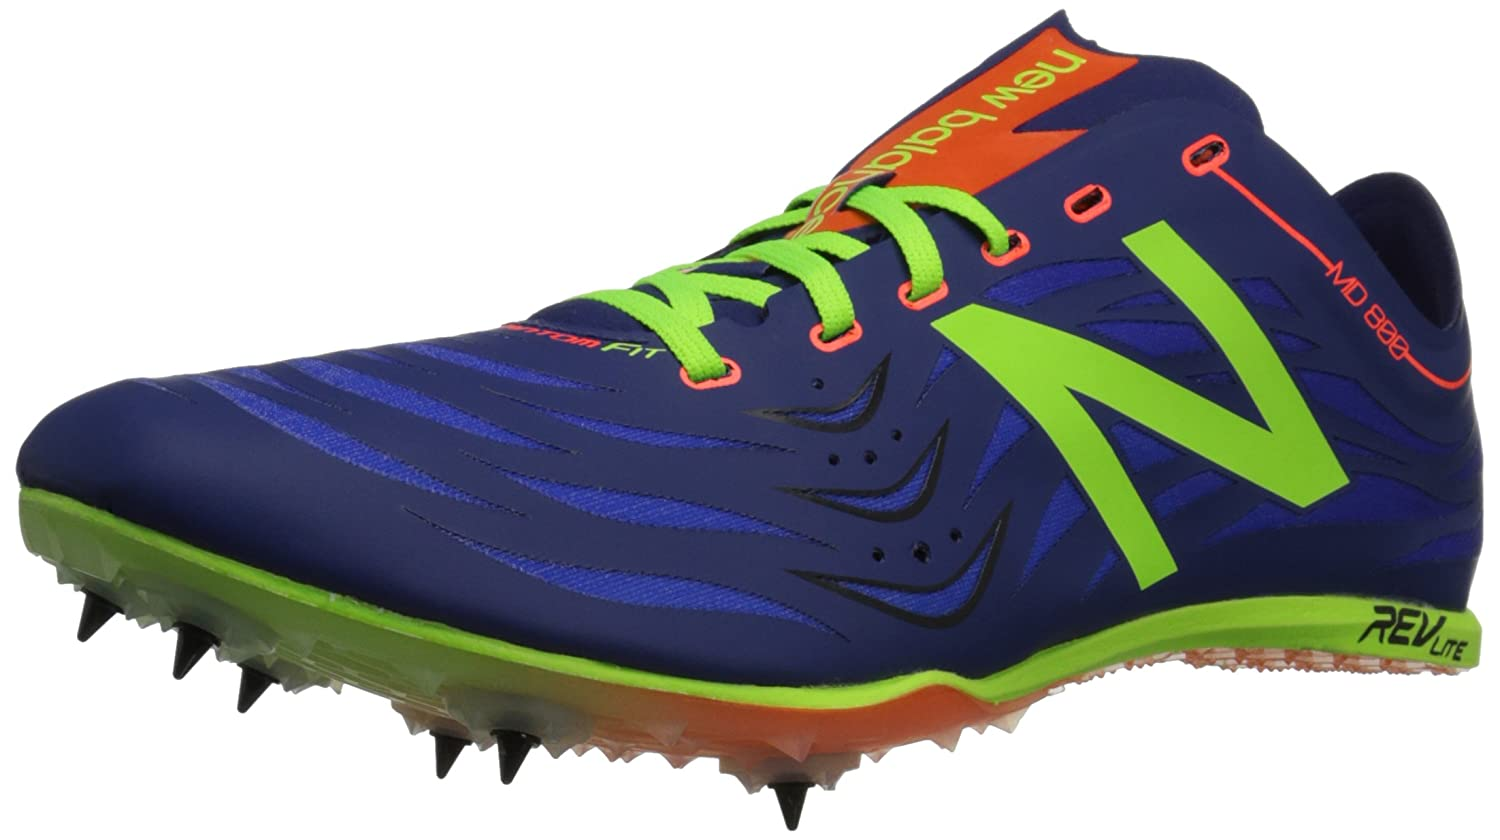 New Balance Men's MD800V4 Track Spike Shoe B00V3MW9C6 10.5 D(M) US|Blue/Lime